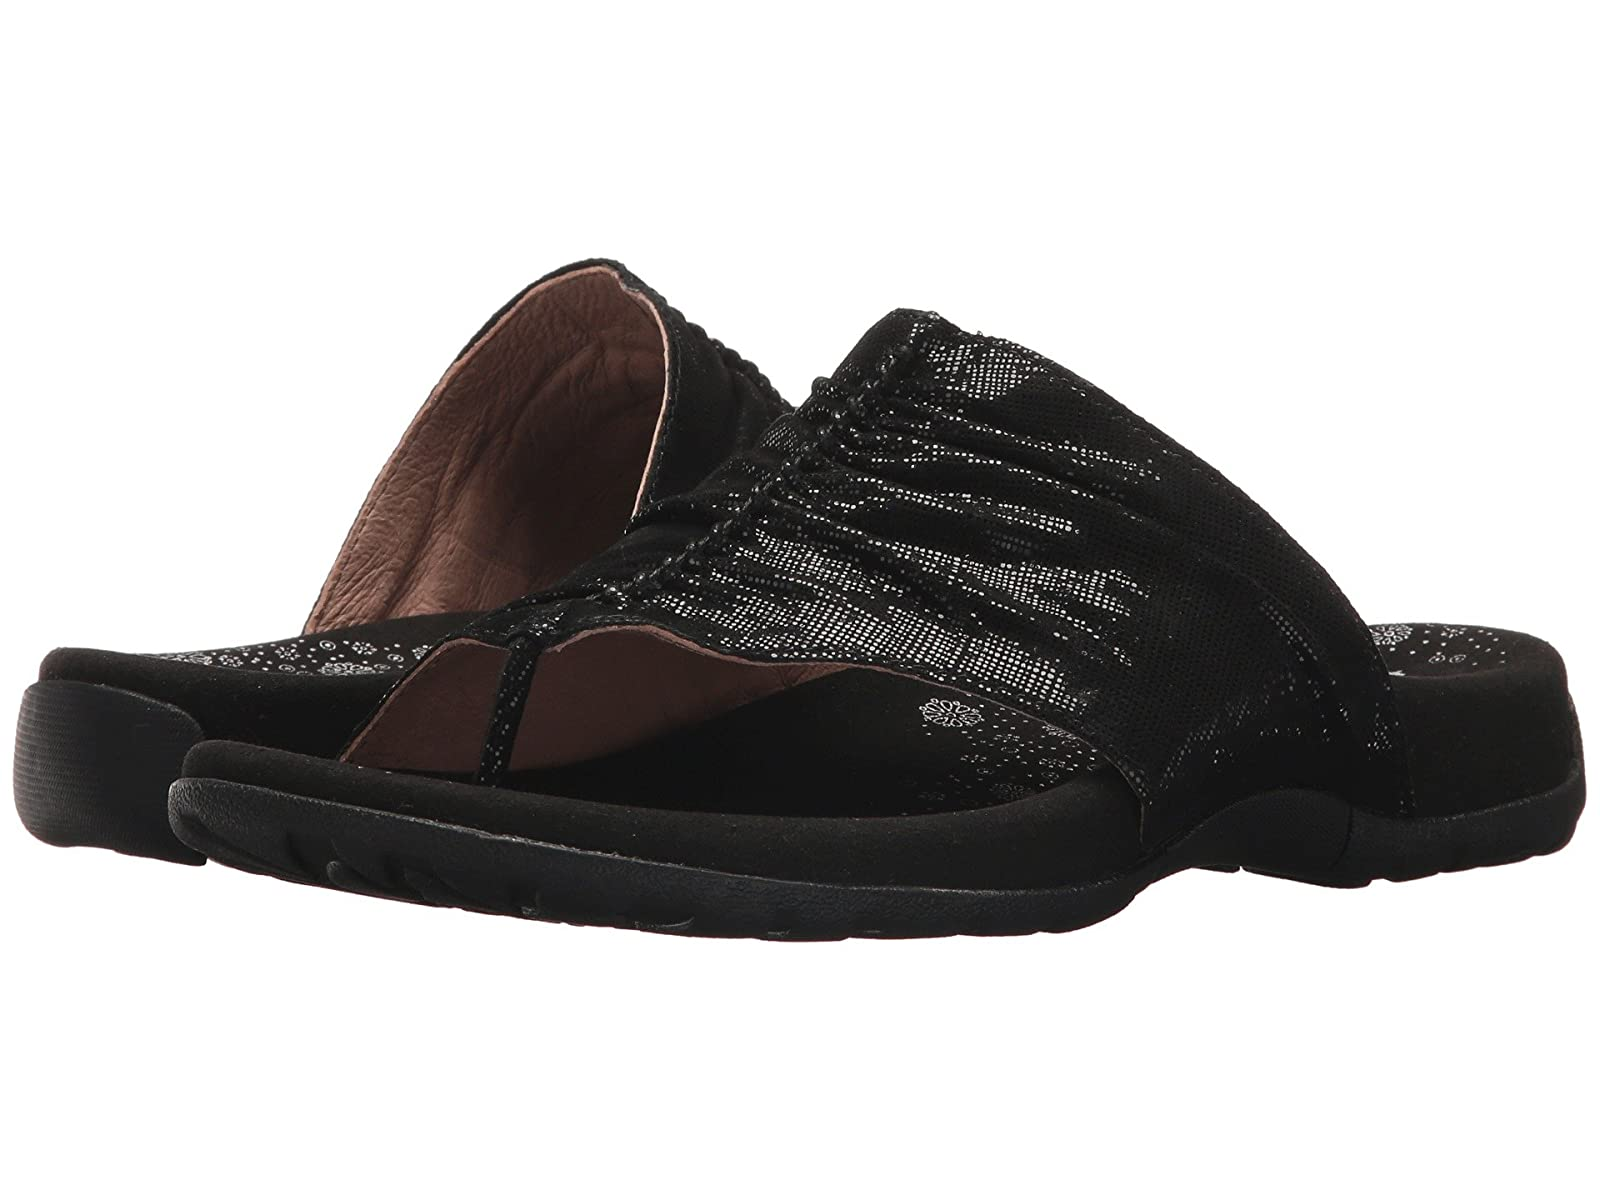 Taos Footwear Gift 2Atmospheric grades have affordable shoes